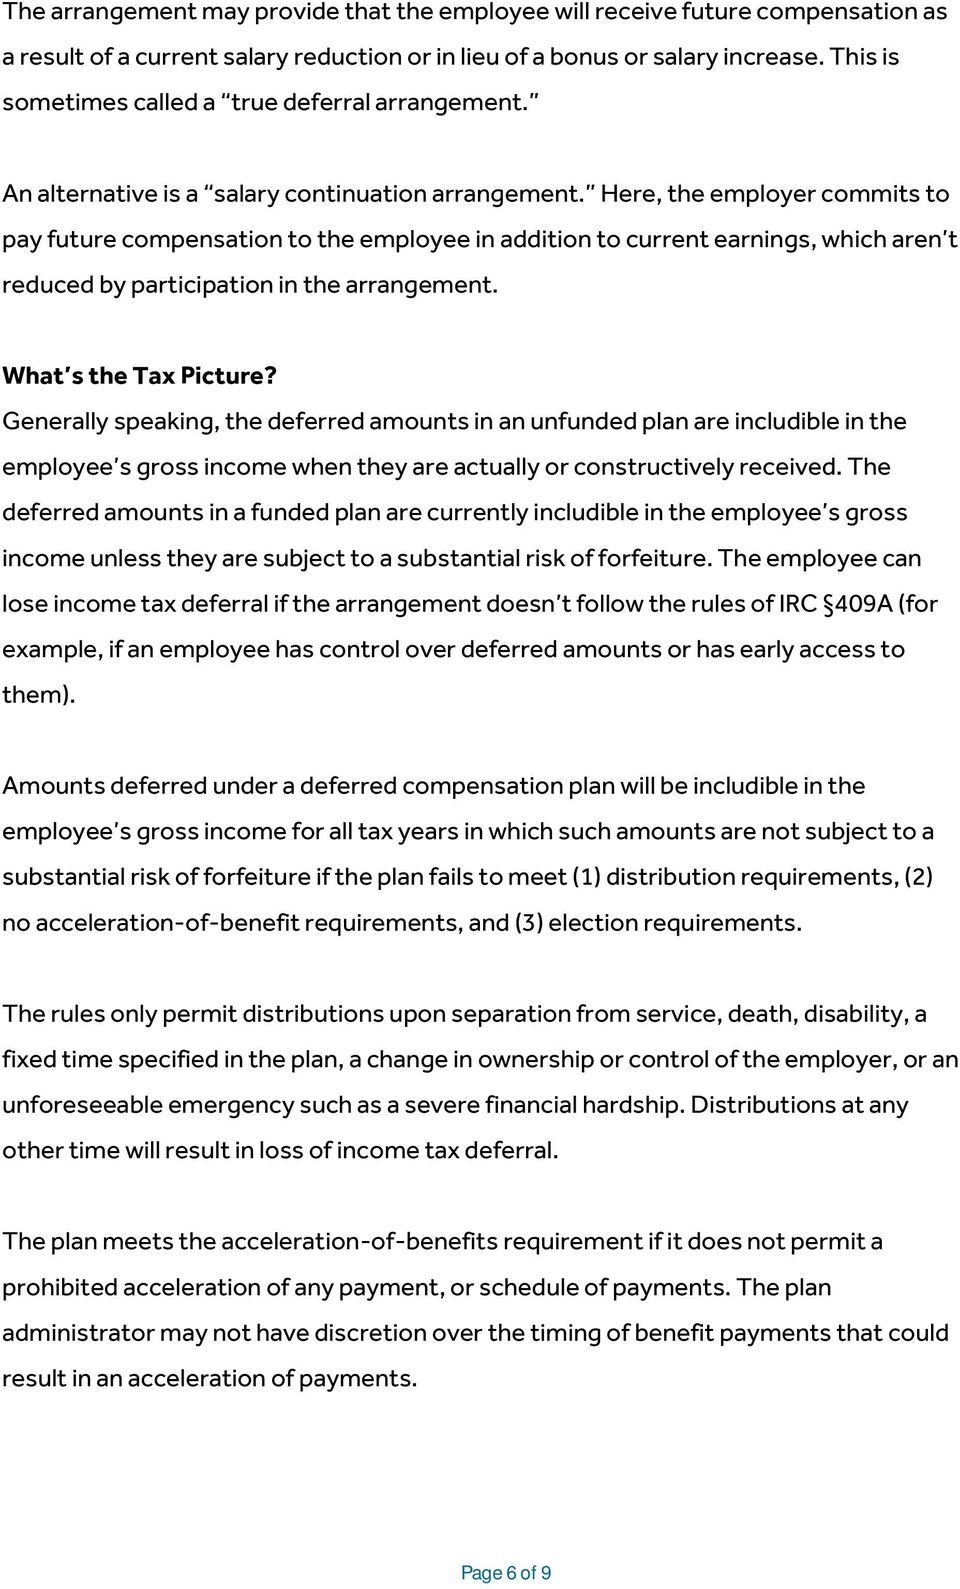 Here, the employer commits to pay future compensation to the employee in addition to current earnings, which aren t reduced by participation in the arrangement. What s the Tax Picture?